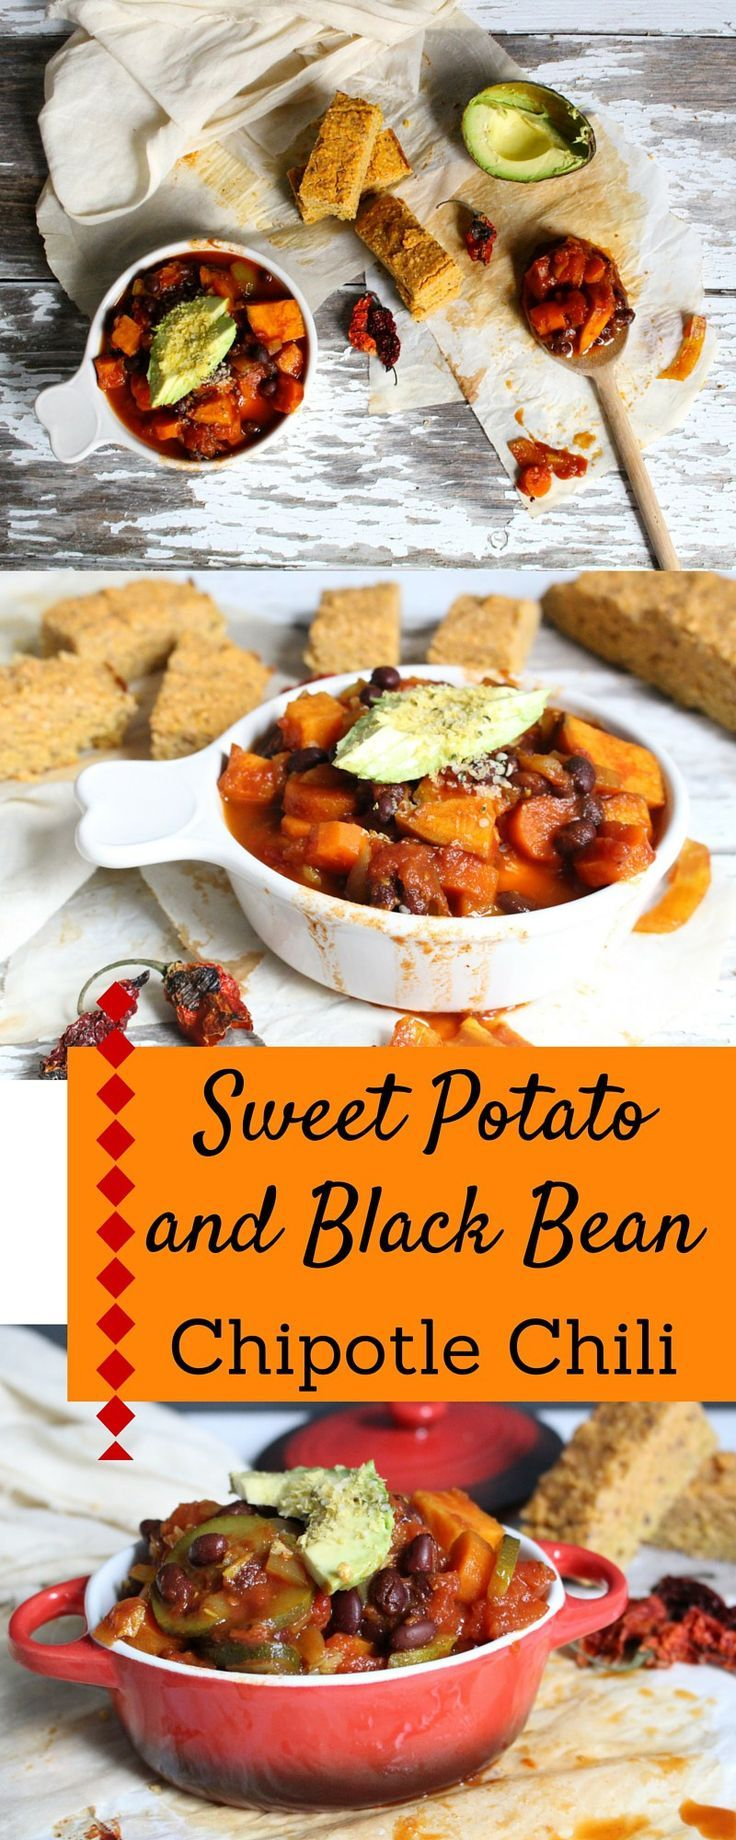 Sweet Potato and Black Bean Chipotle Chili and a recipe for lentil cornbread. Healthy, vegan and great for a mid-week dinner!